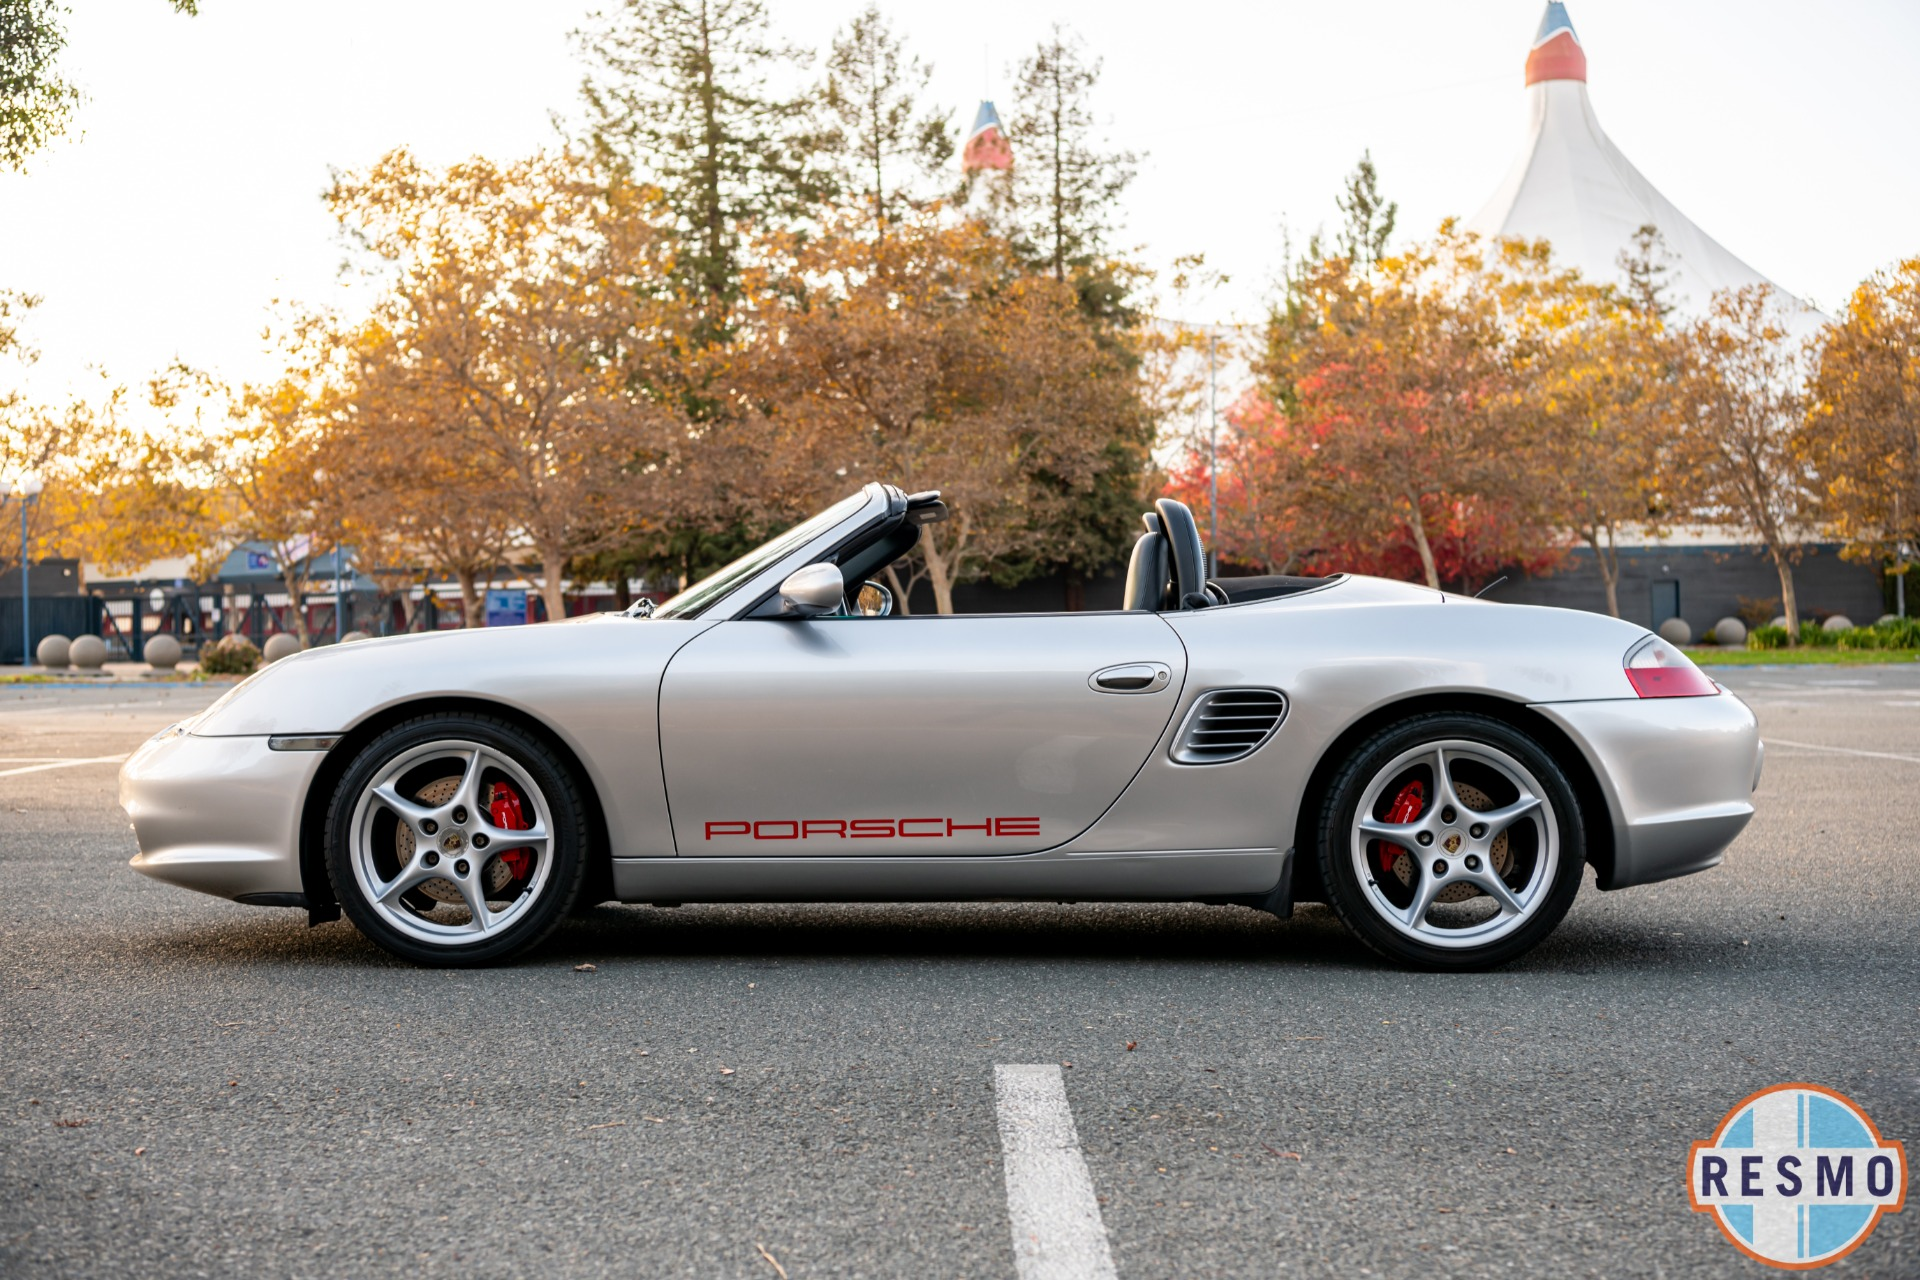 Used 2003 Porsche Boxster S Used 2003 Porsche Boxster S for sale Sold at Response Motors in Mountain View CA 10